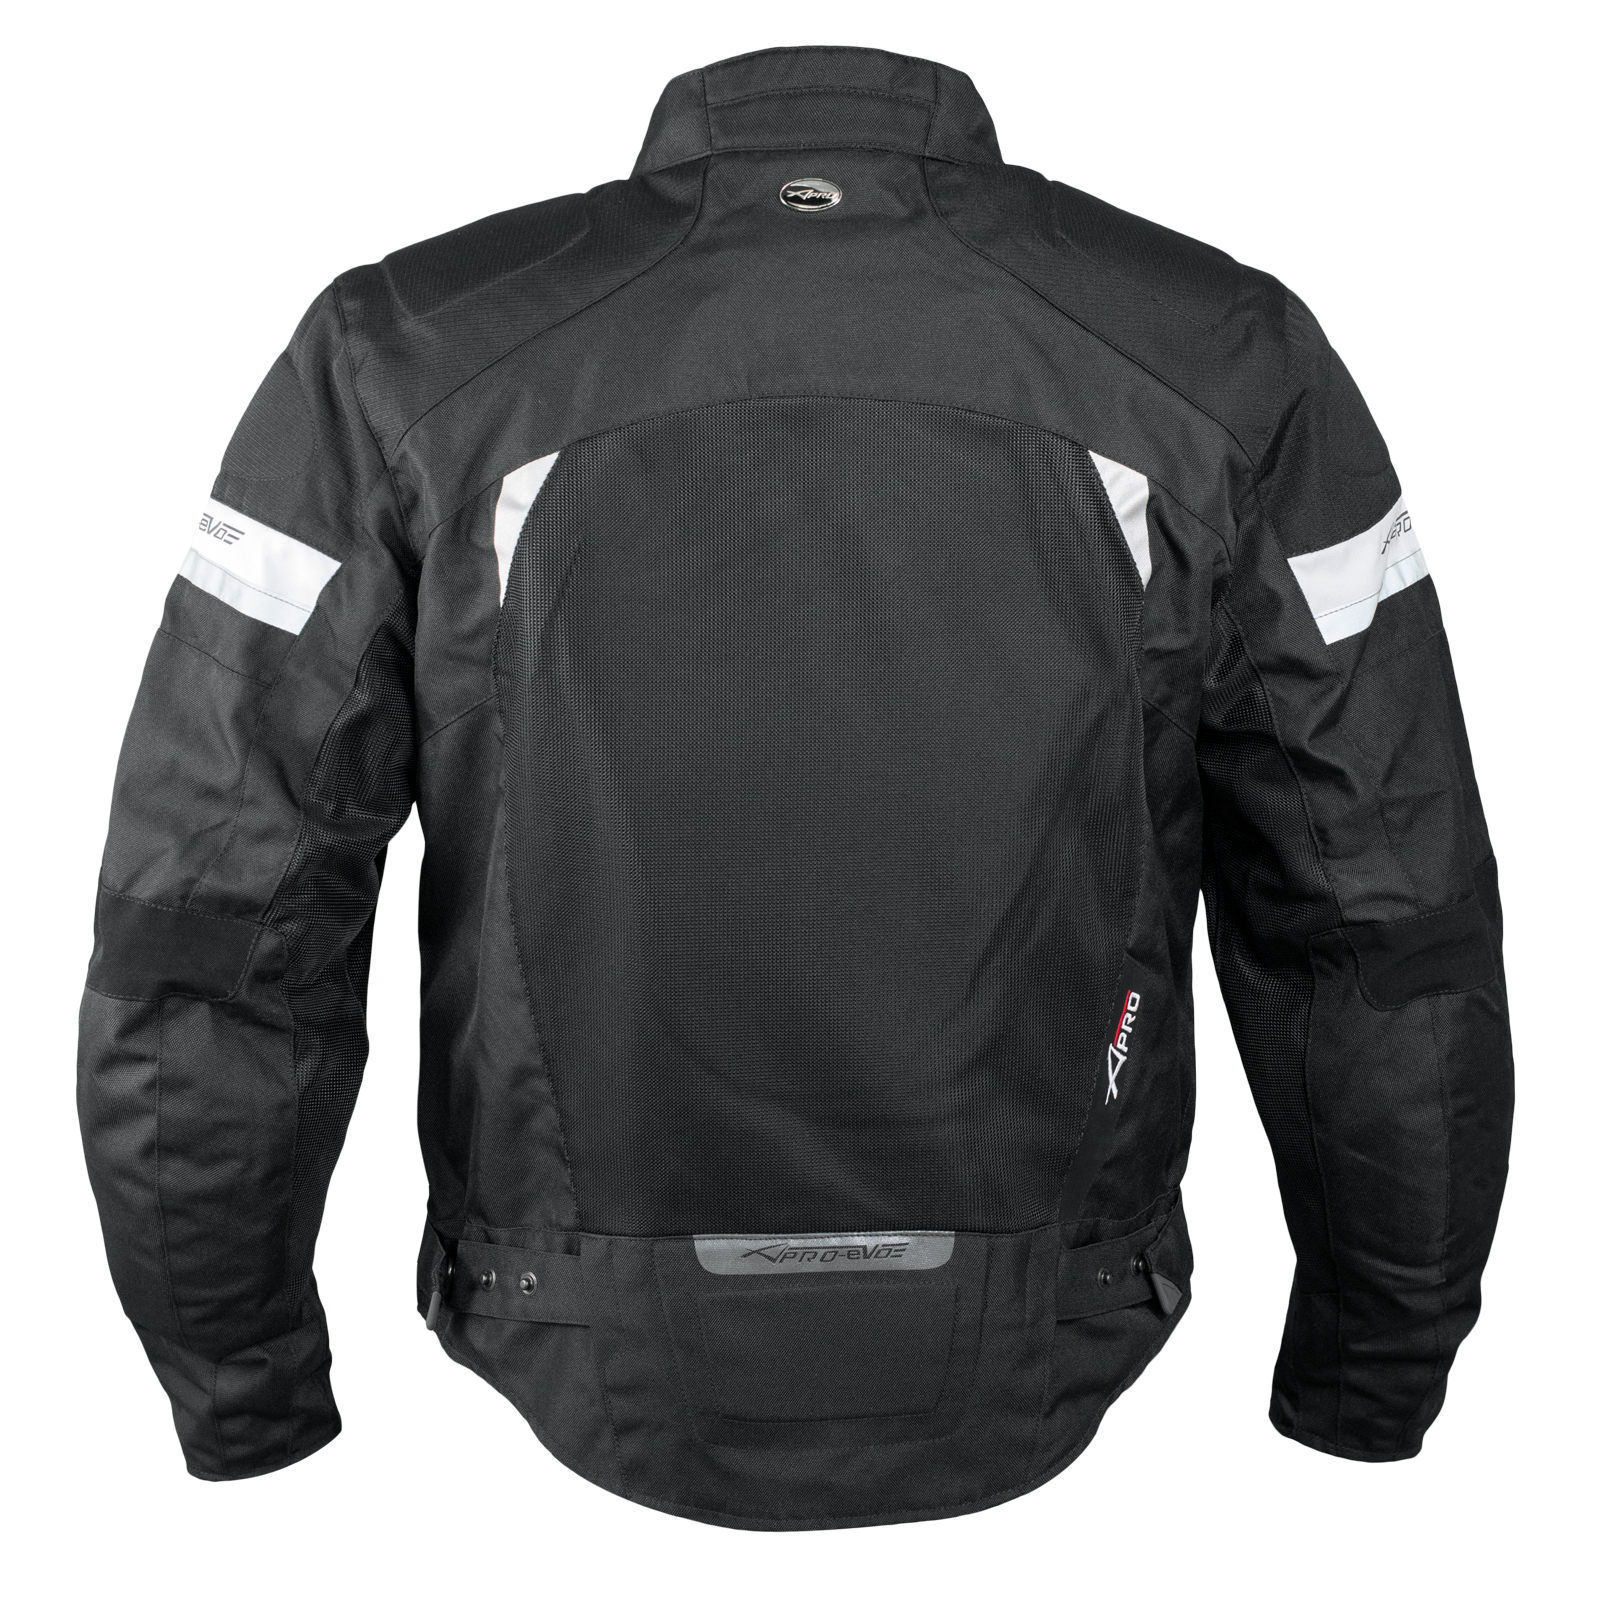 reputable site 191af e4c0d eolo giacca moto mesh jacket motorcycle a-pro black nero.jpg